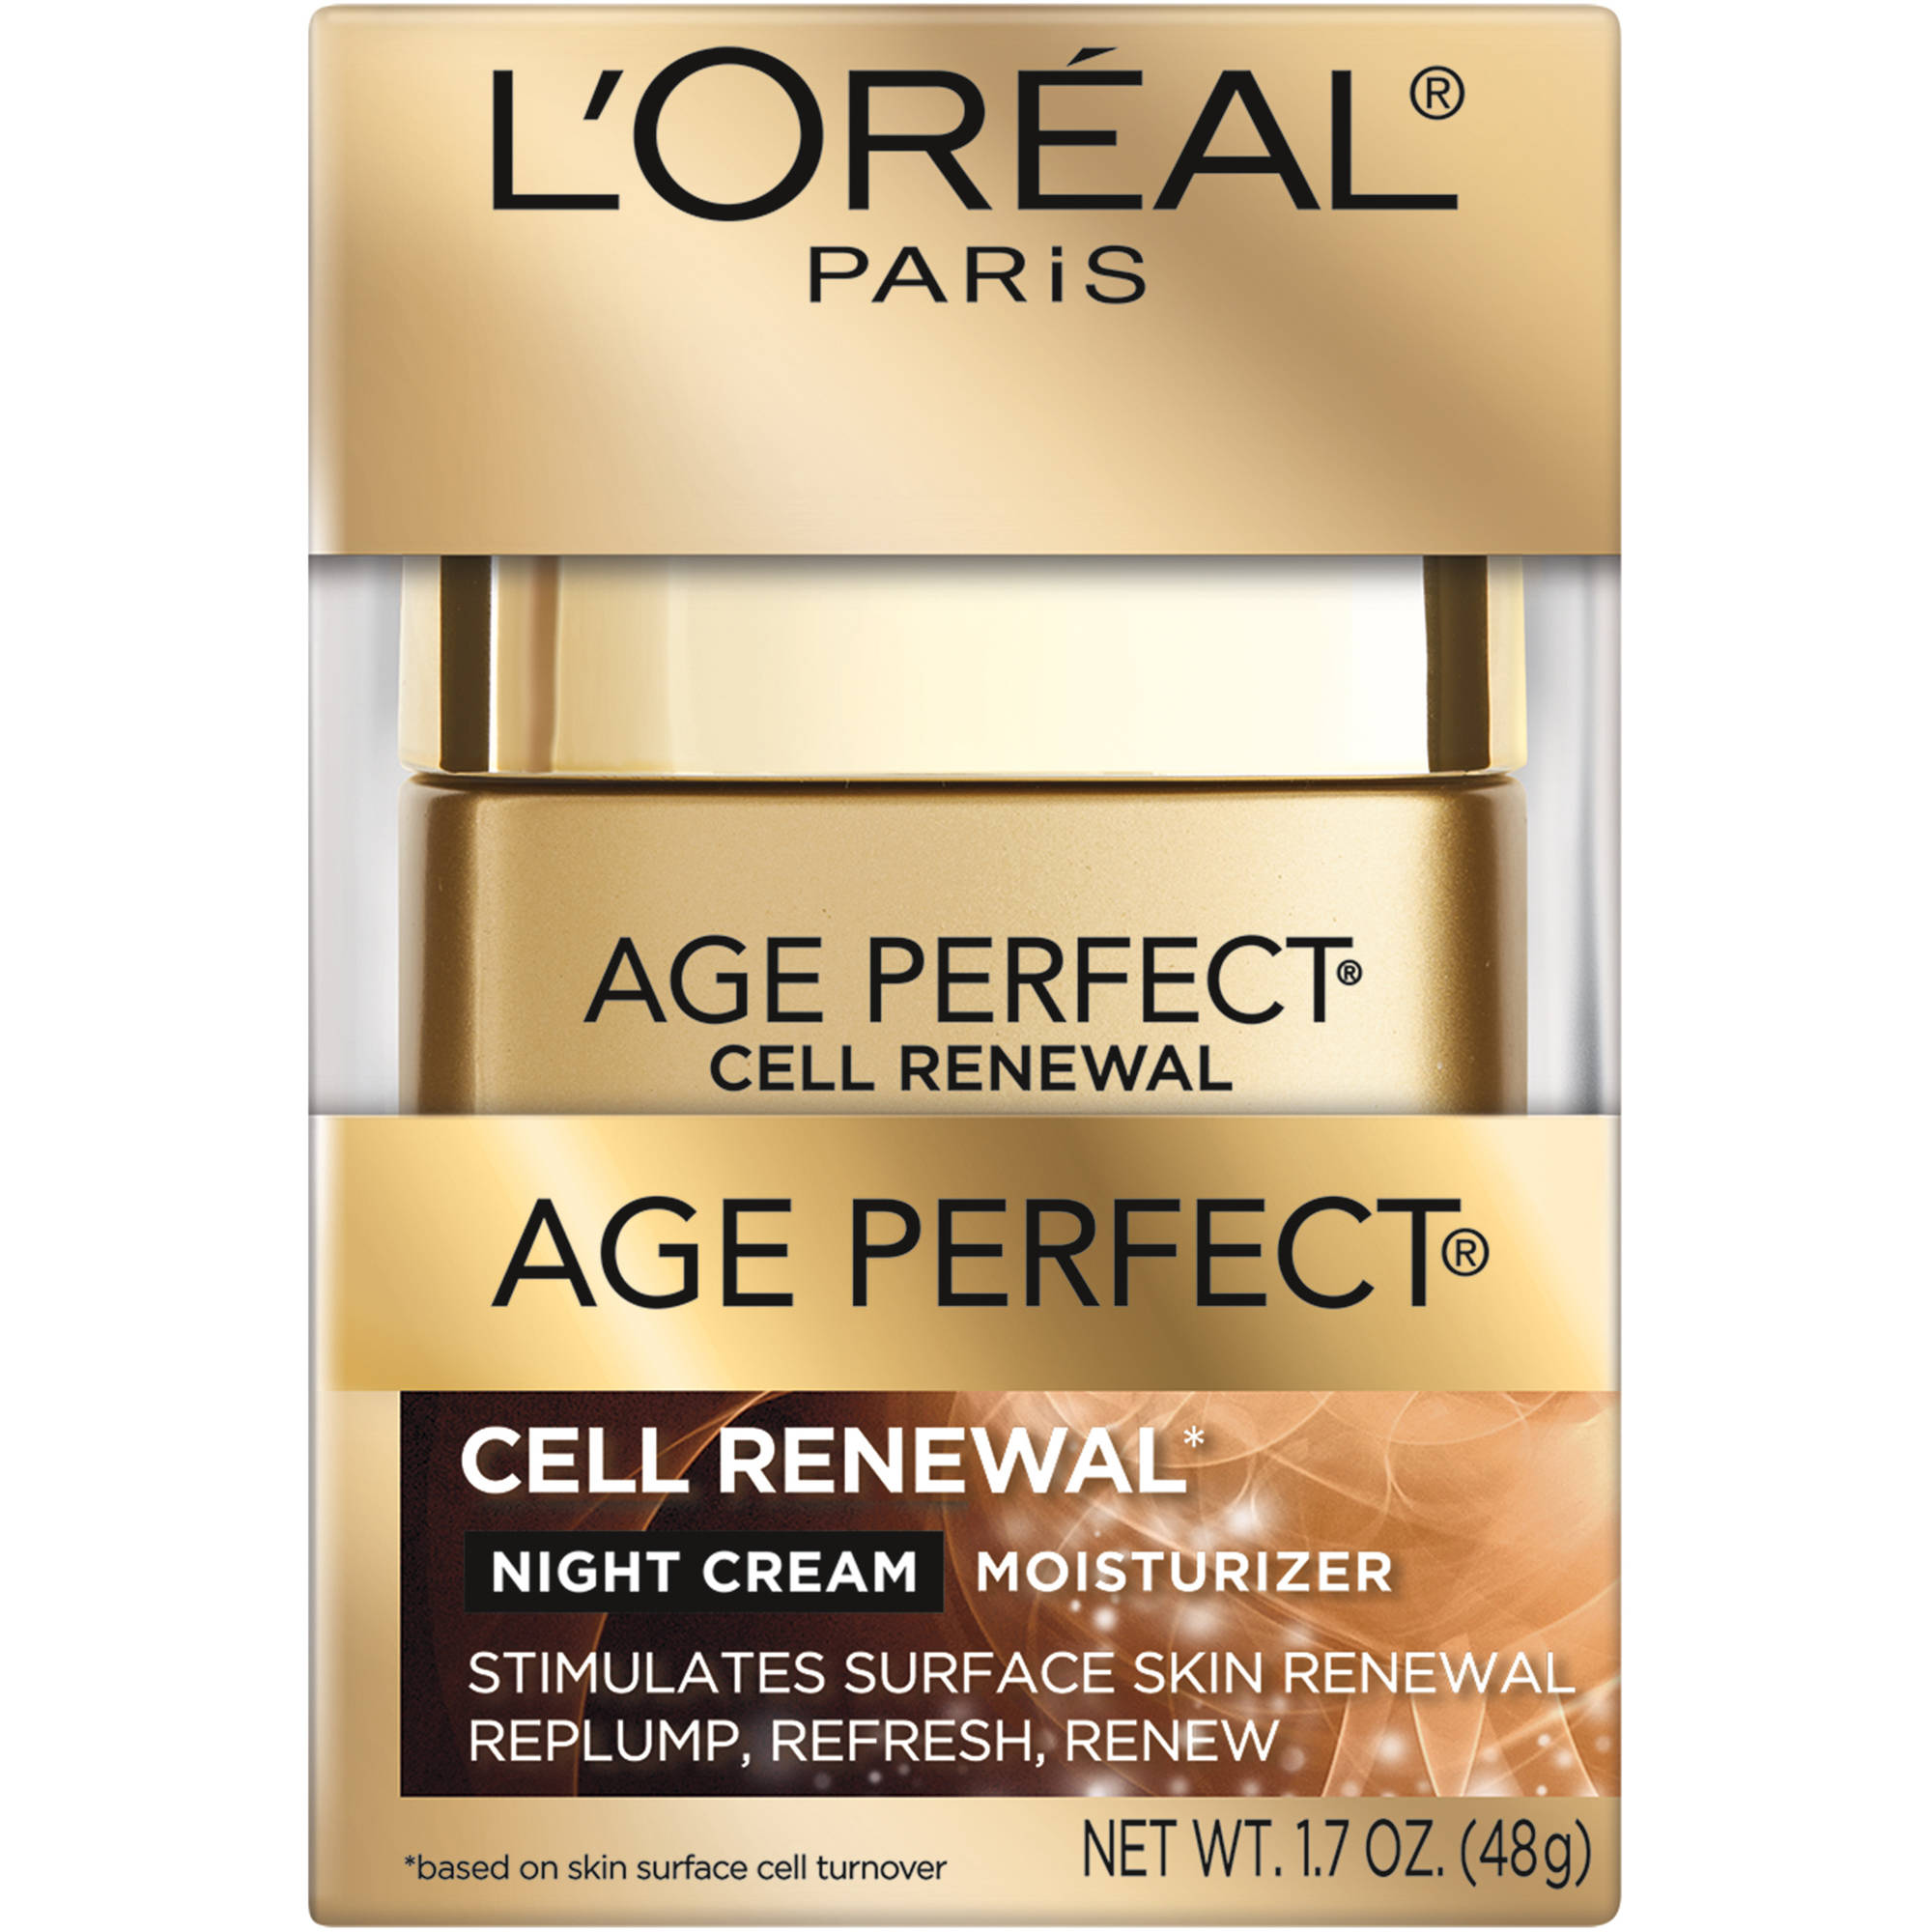 L'Oreal Paris Age   Perfect Cell Renewal* Night Cream